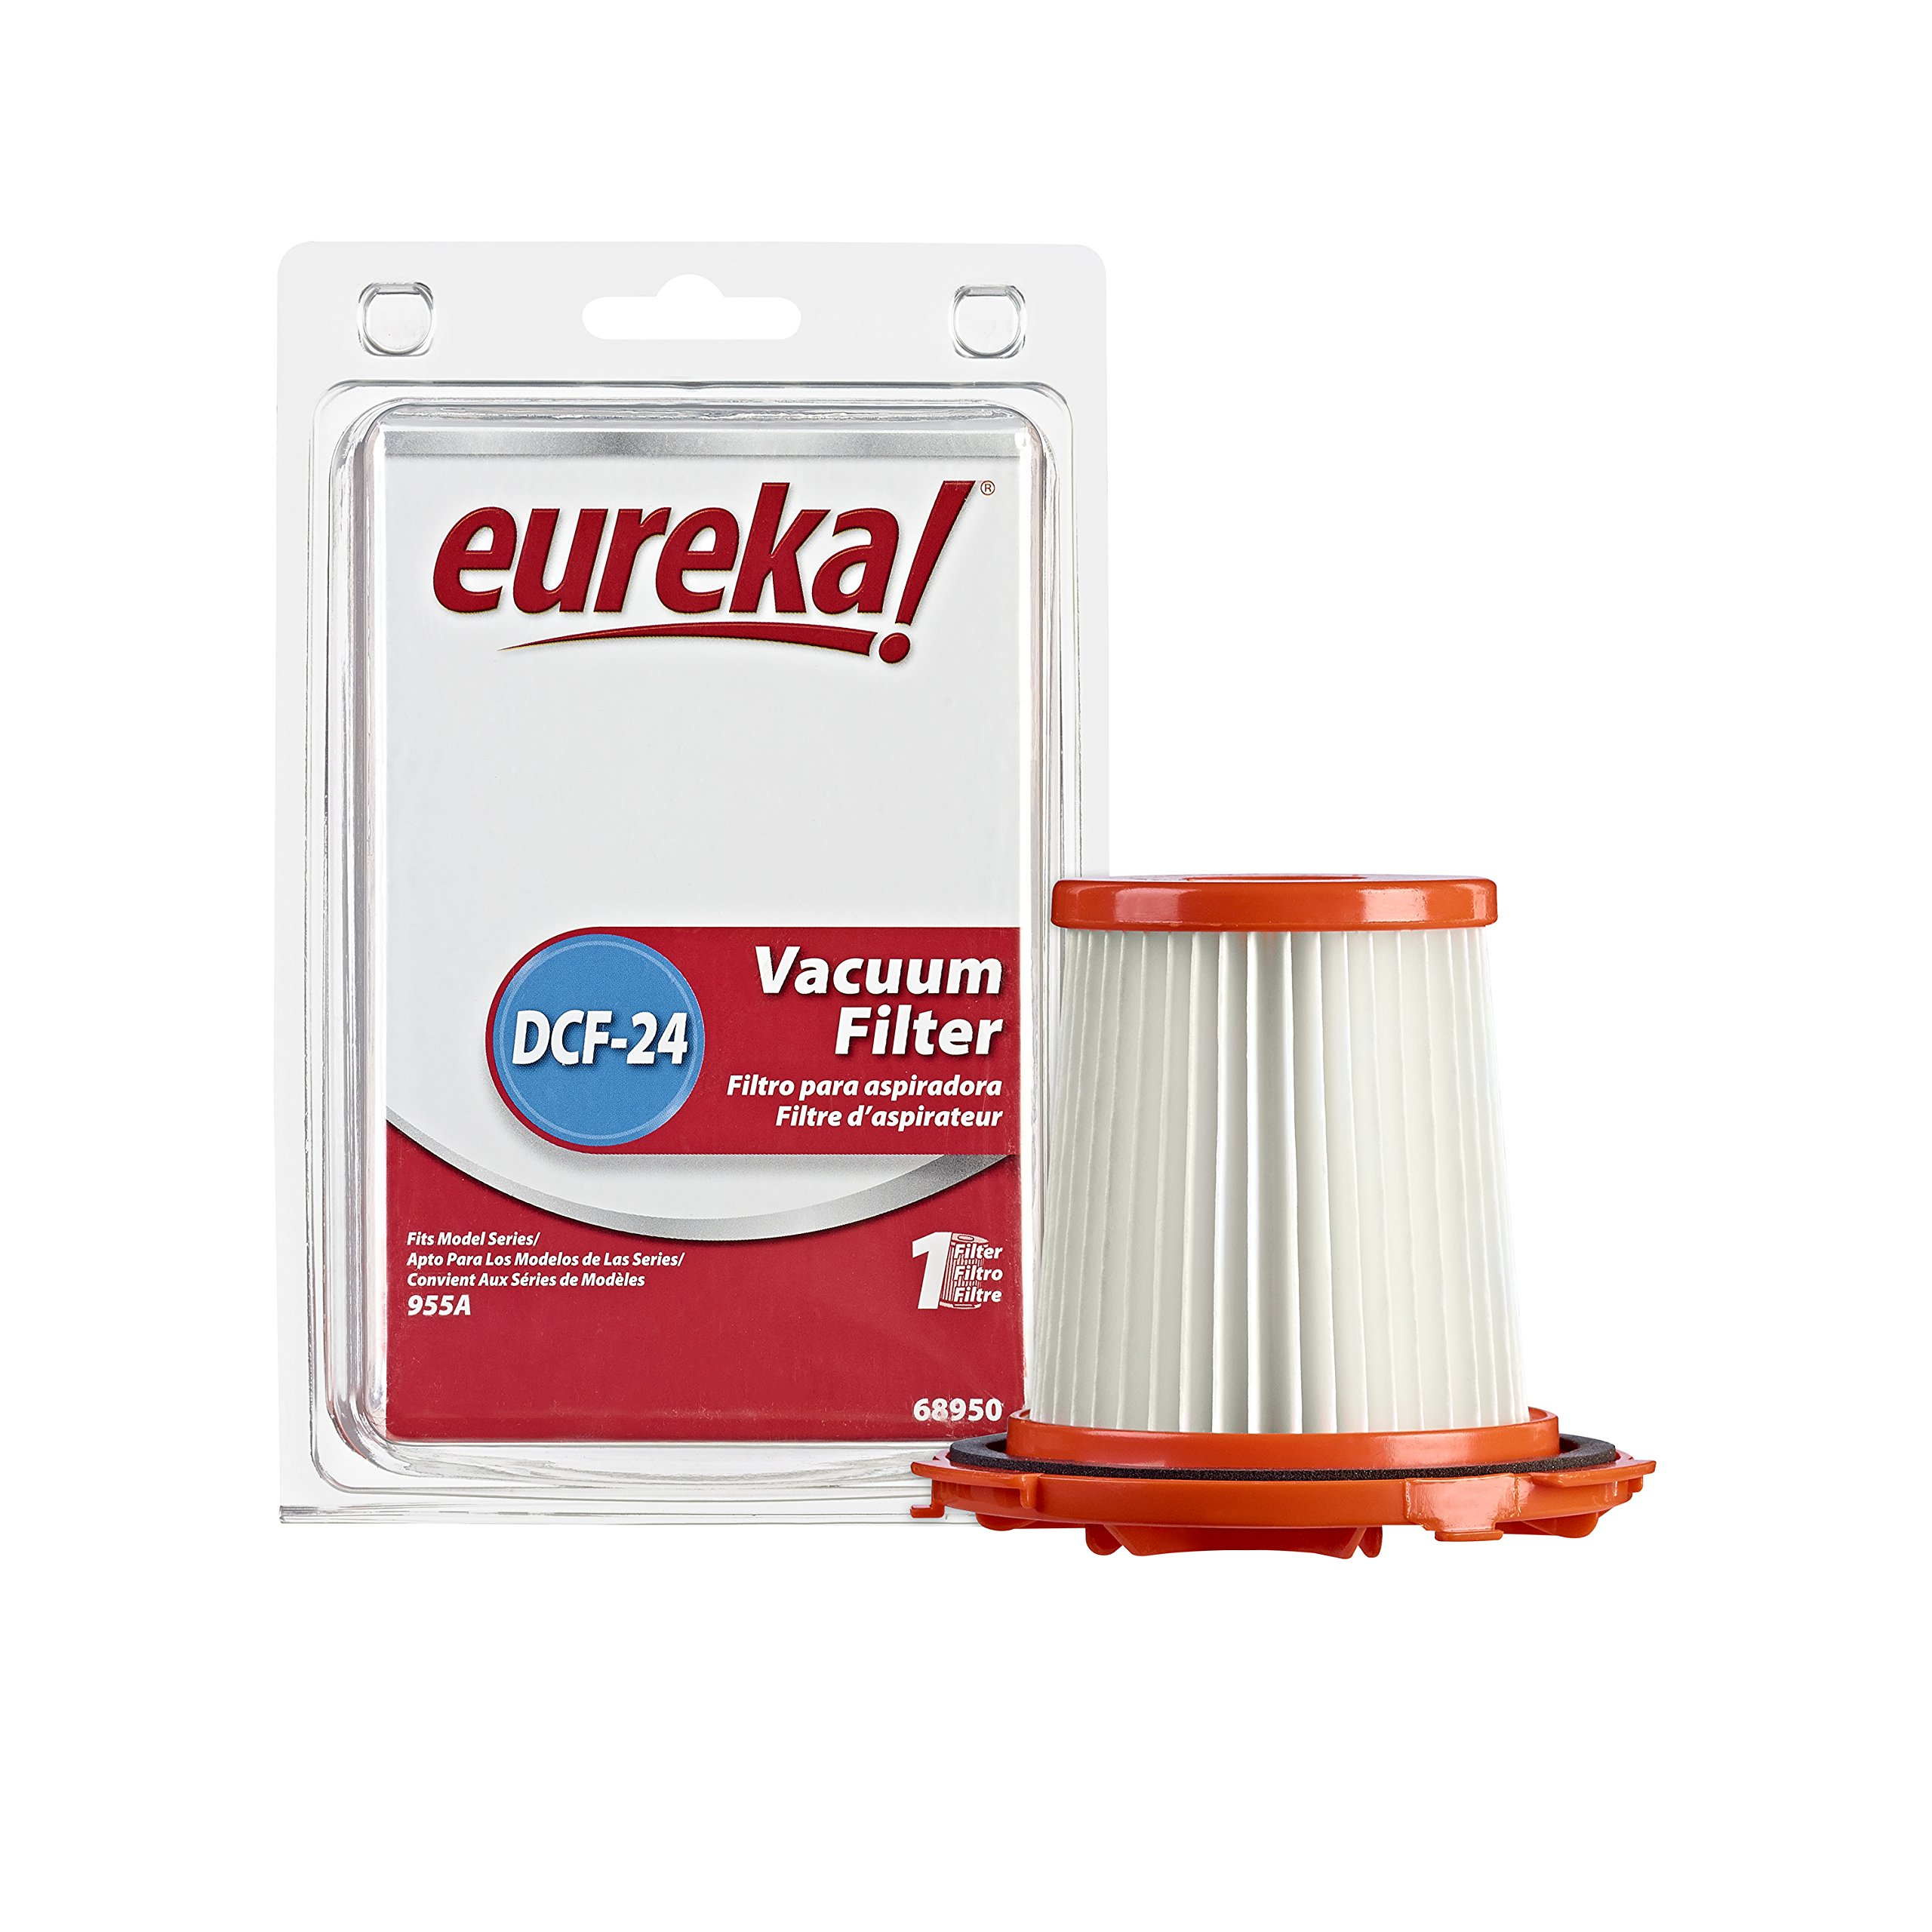 Genuine Eureka DCF-24 Filter 68950 - 1 filter